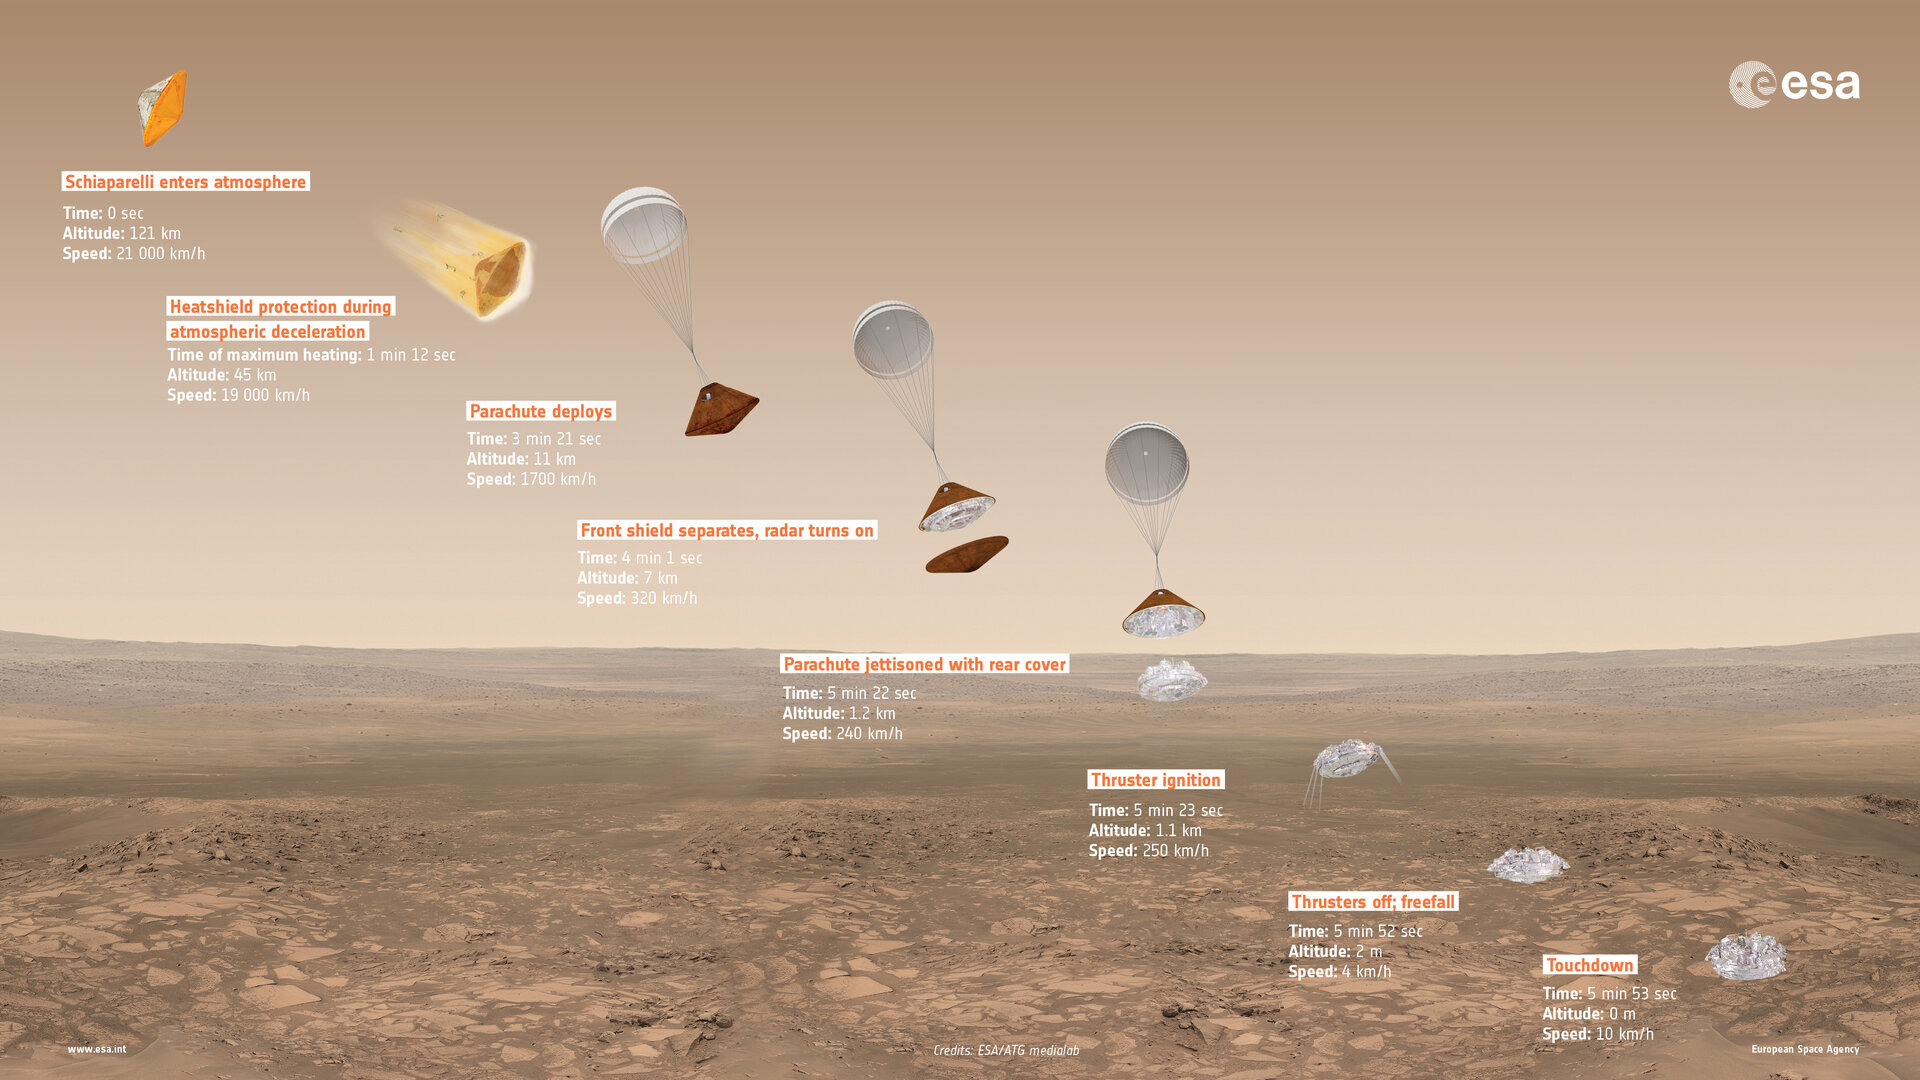 ExoMars 2016 Schiaparelli descent sequence (16:9)